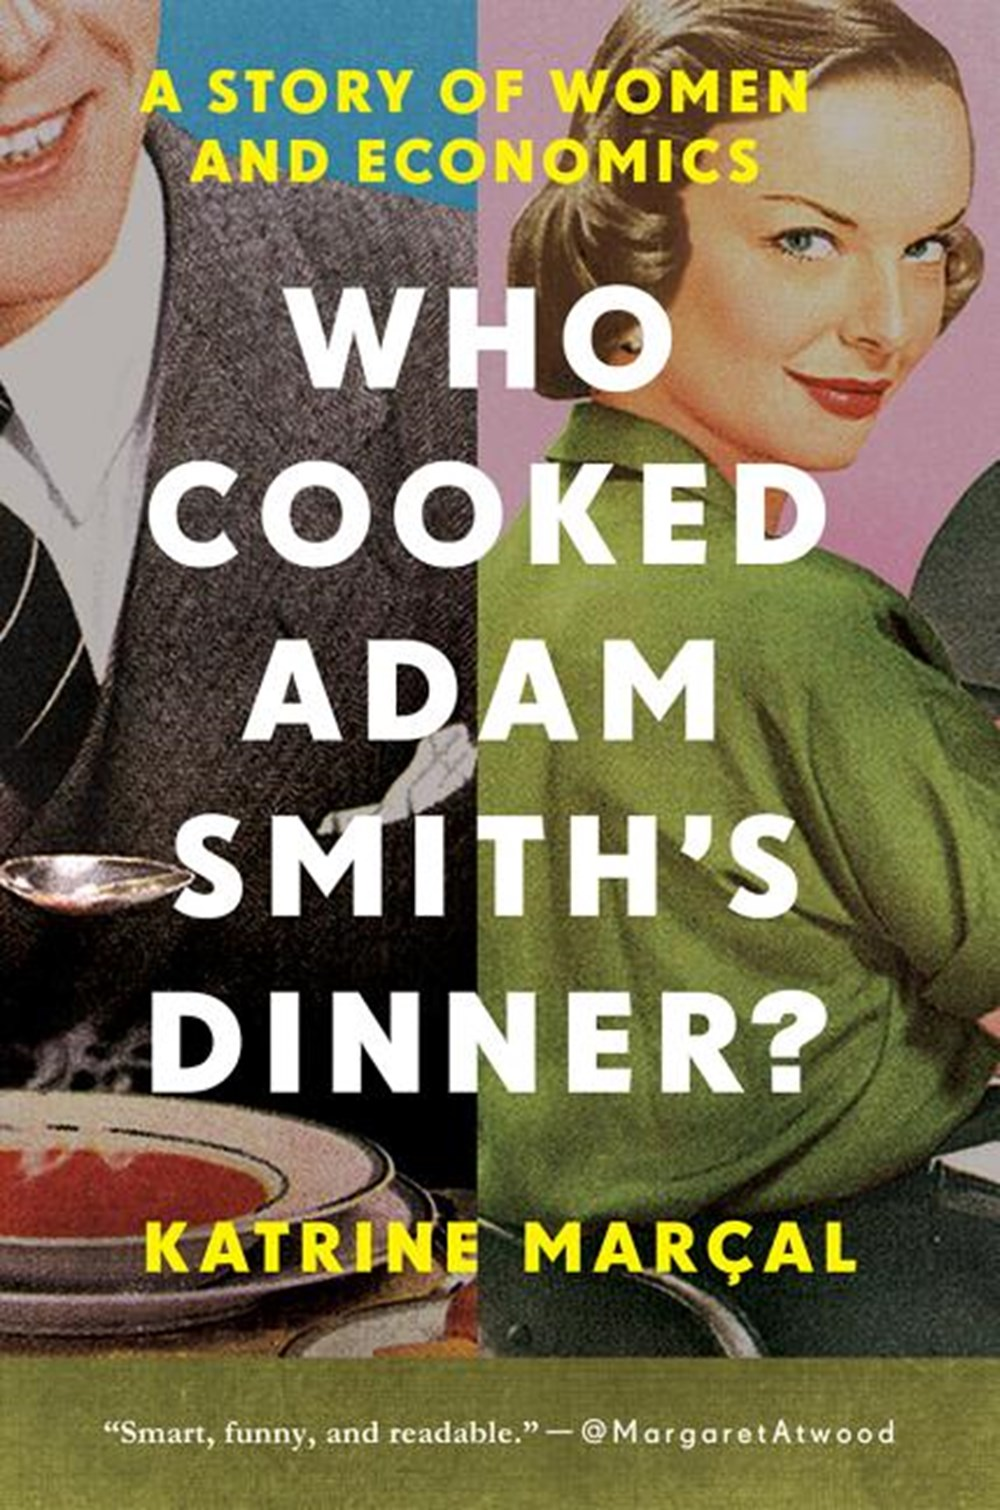 Who Cooked Adam Smith's Dinner? A Story of Women and Economics